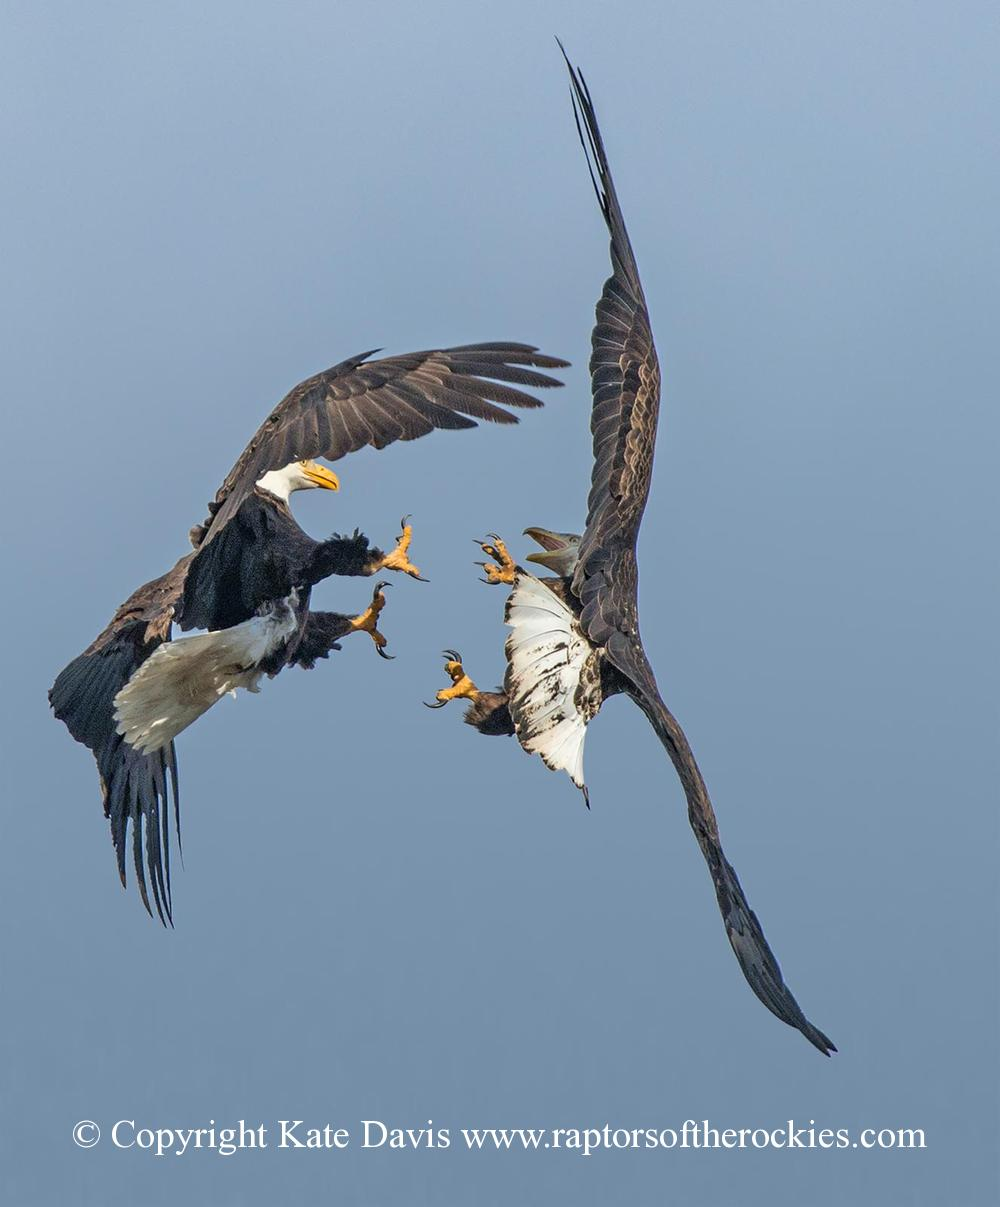 American Bald Eagle - Eagle Fight - Golden Eagle - The adult male Bald Eagle got in a scrap with a younger passer-by